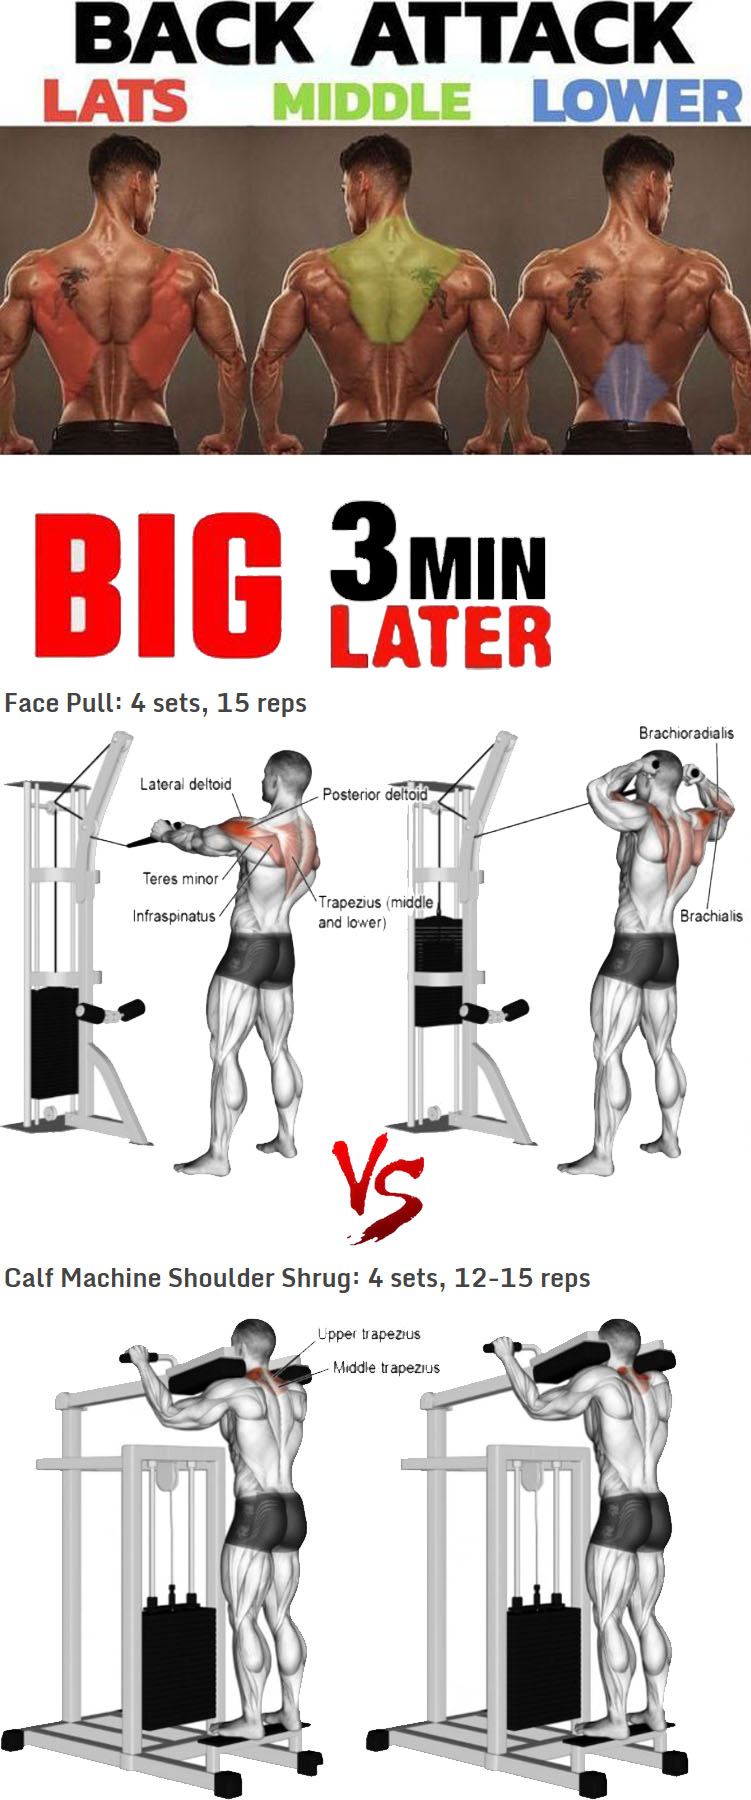 Calf Machine Shoulder Shrug VS Face Pull